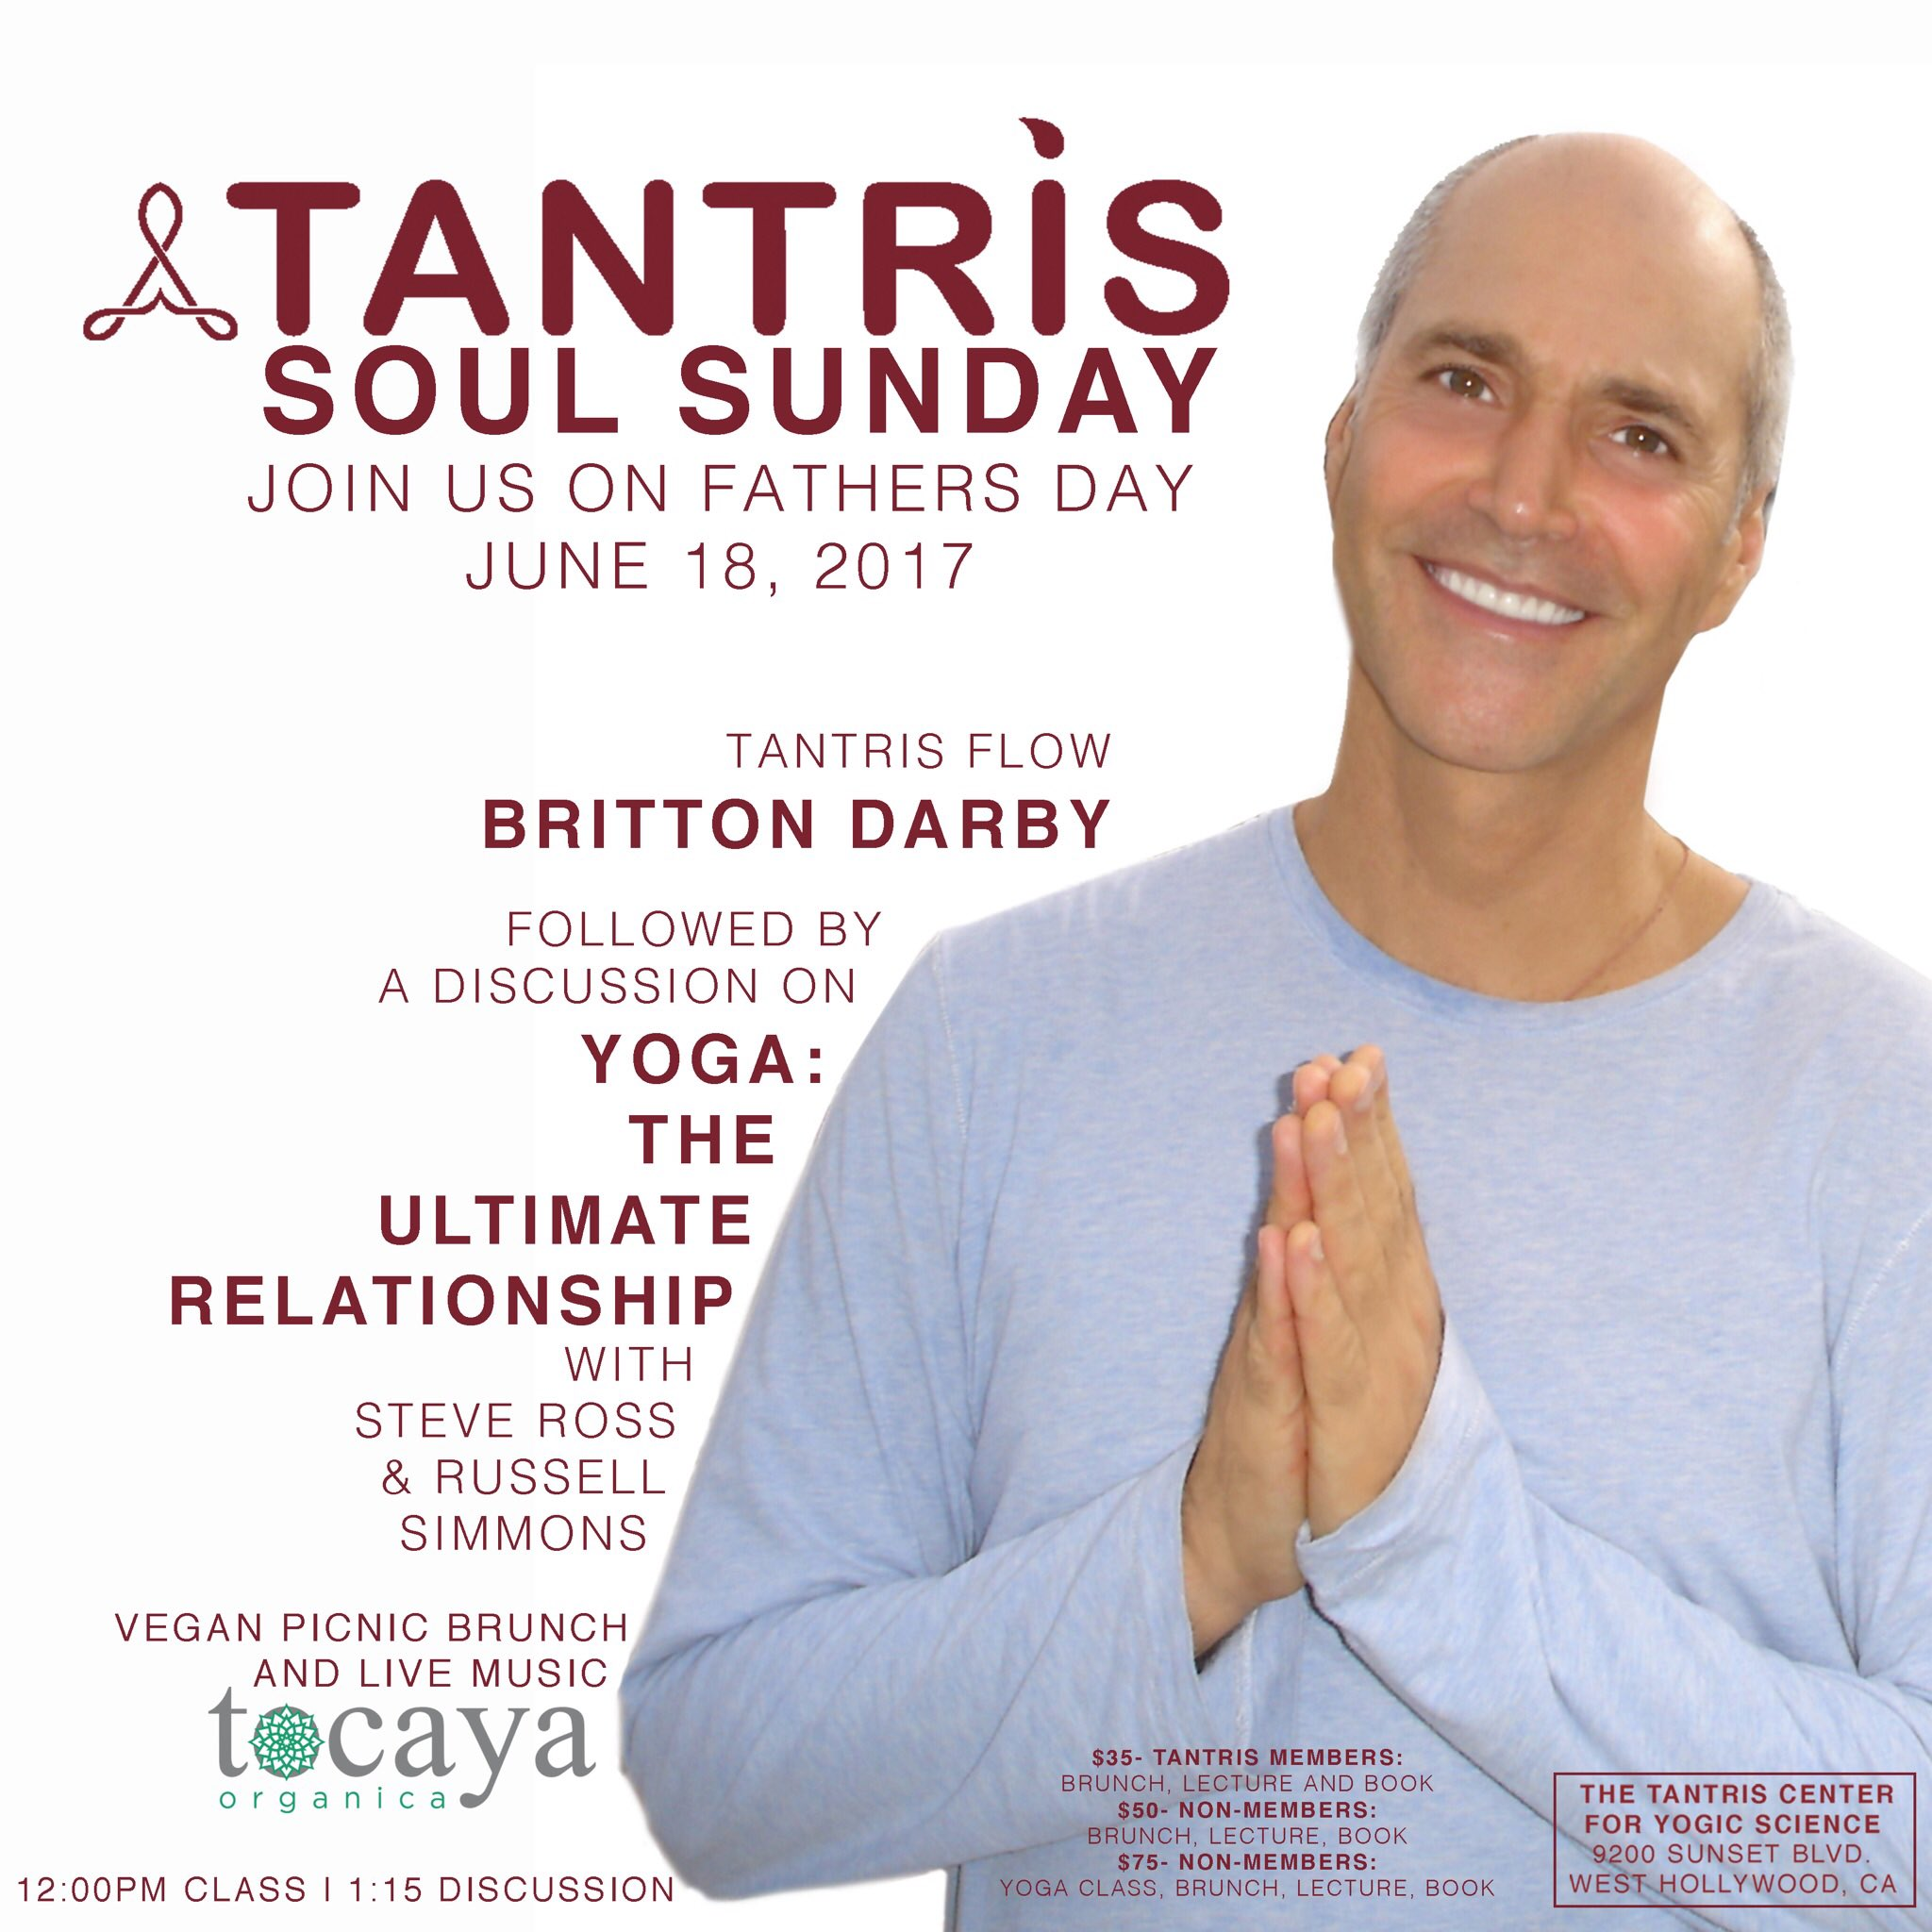 Soul Sunday 12pm. Come to Tantris for Father's Day https://t.co/NcFt0LjOmM